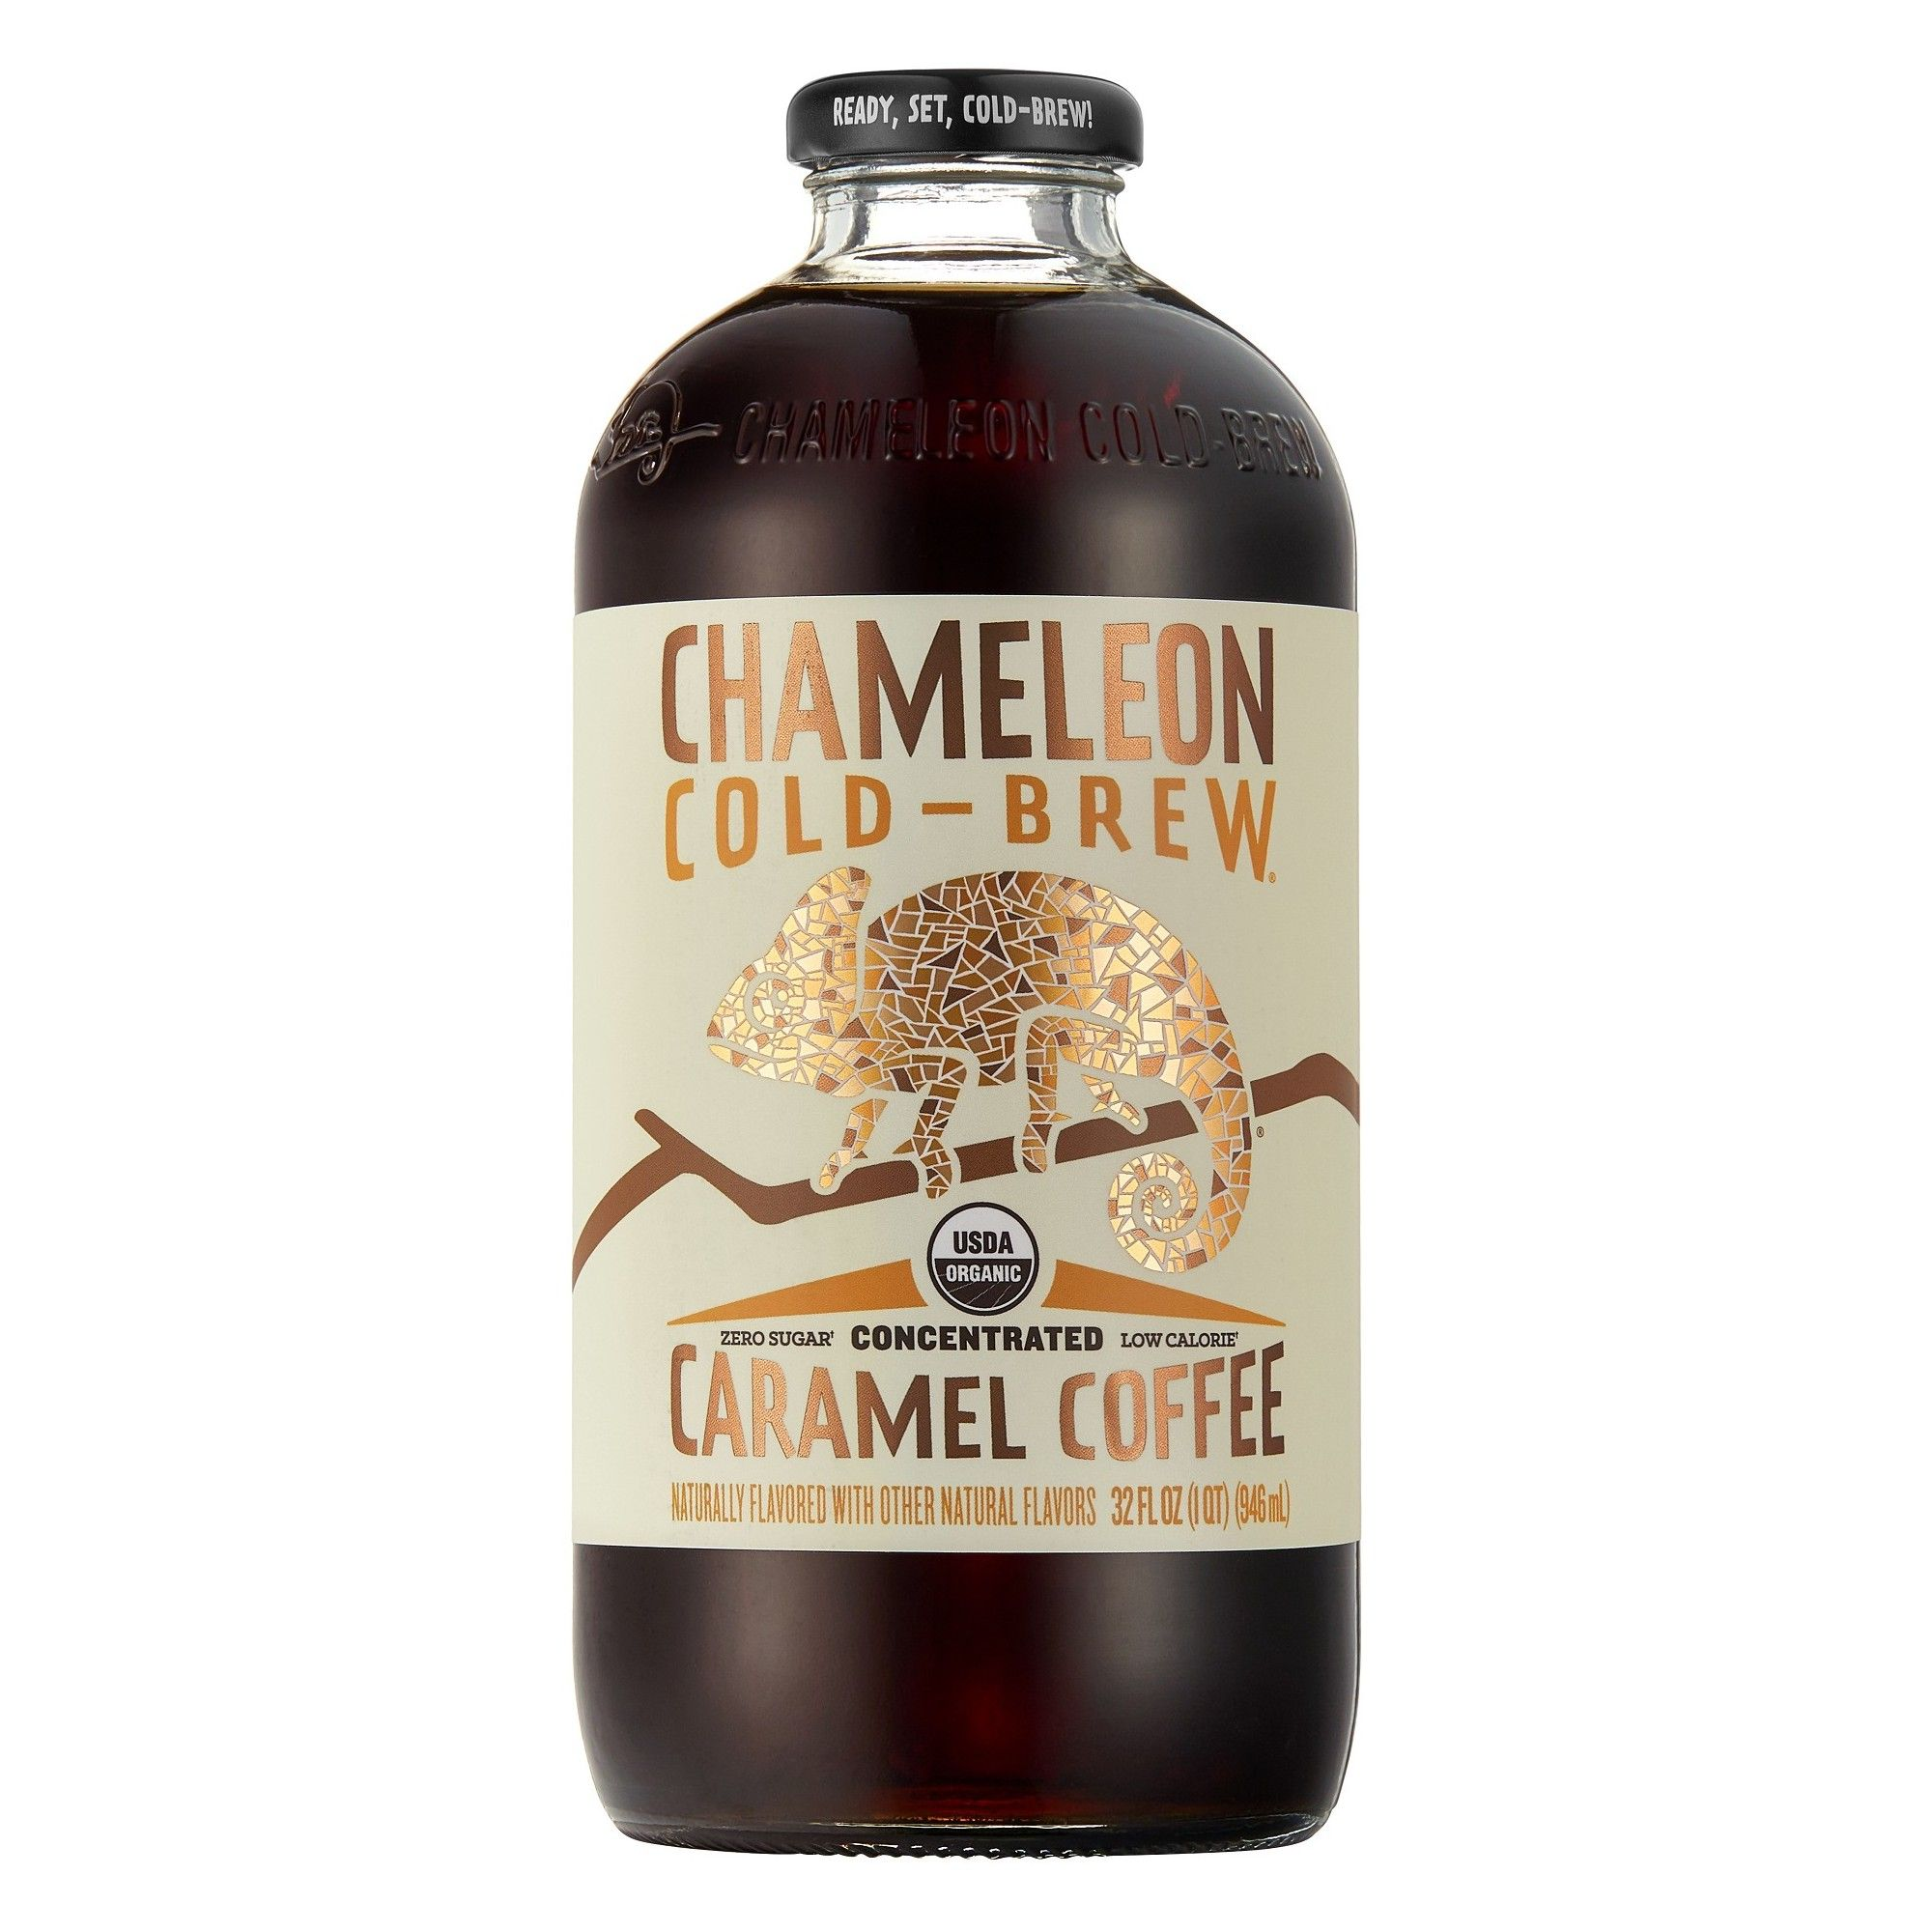 Chameleon Cold Brew Caramel Coffee Concentrate 1qt In 2020 Cold Brew Coffee Concentrate Caramel Coffee